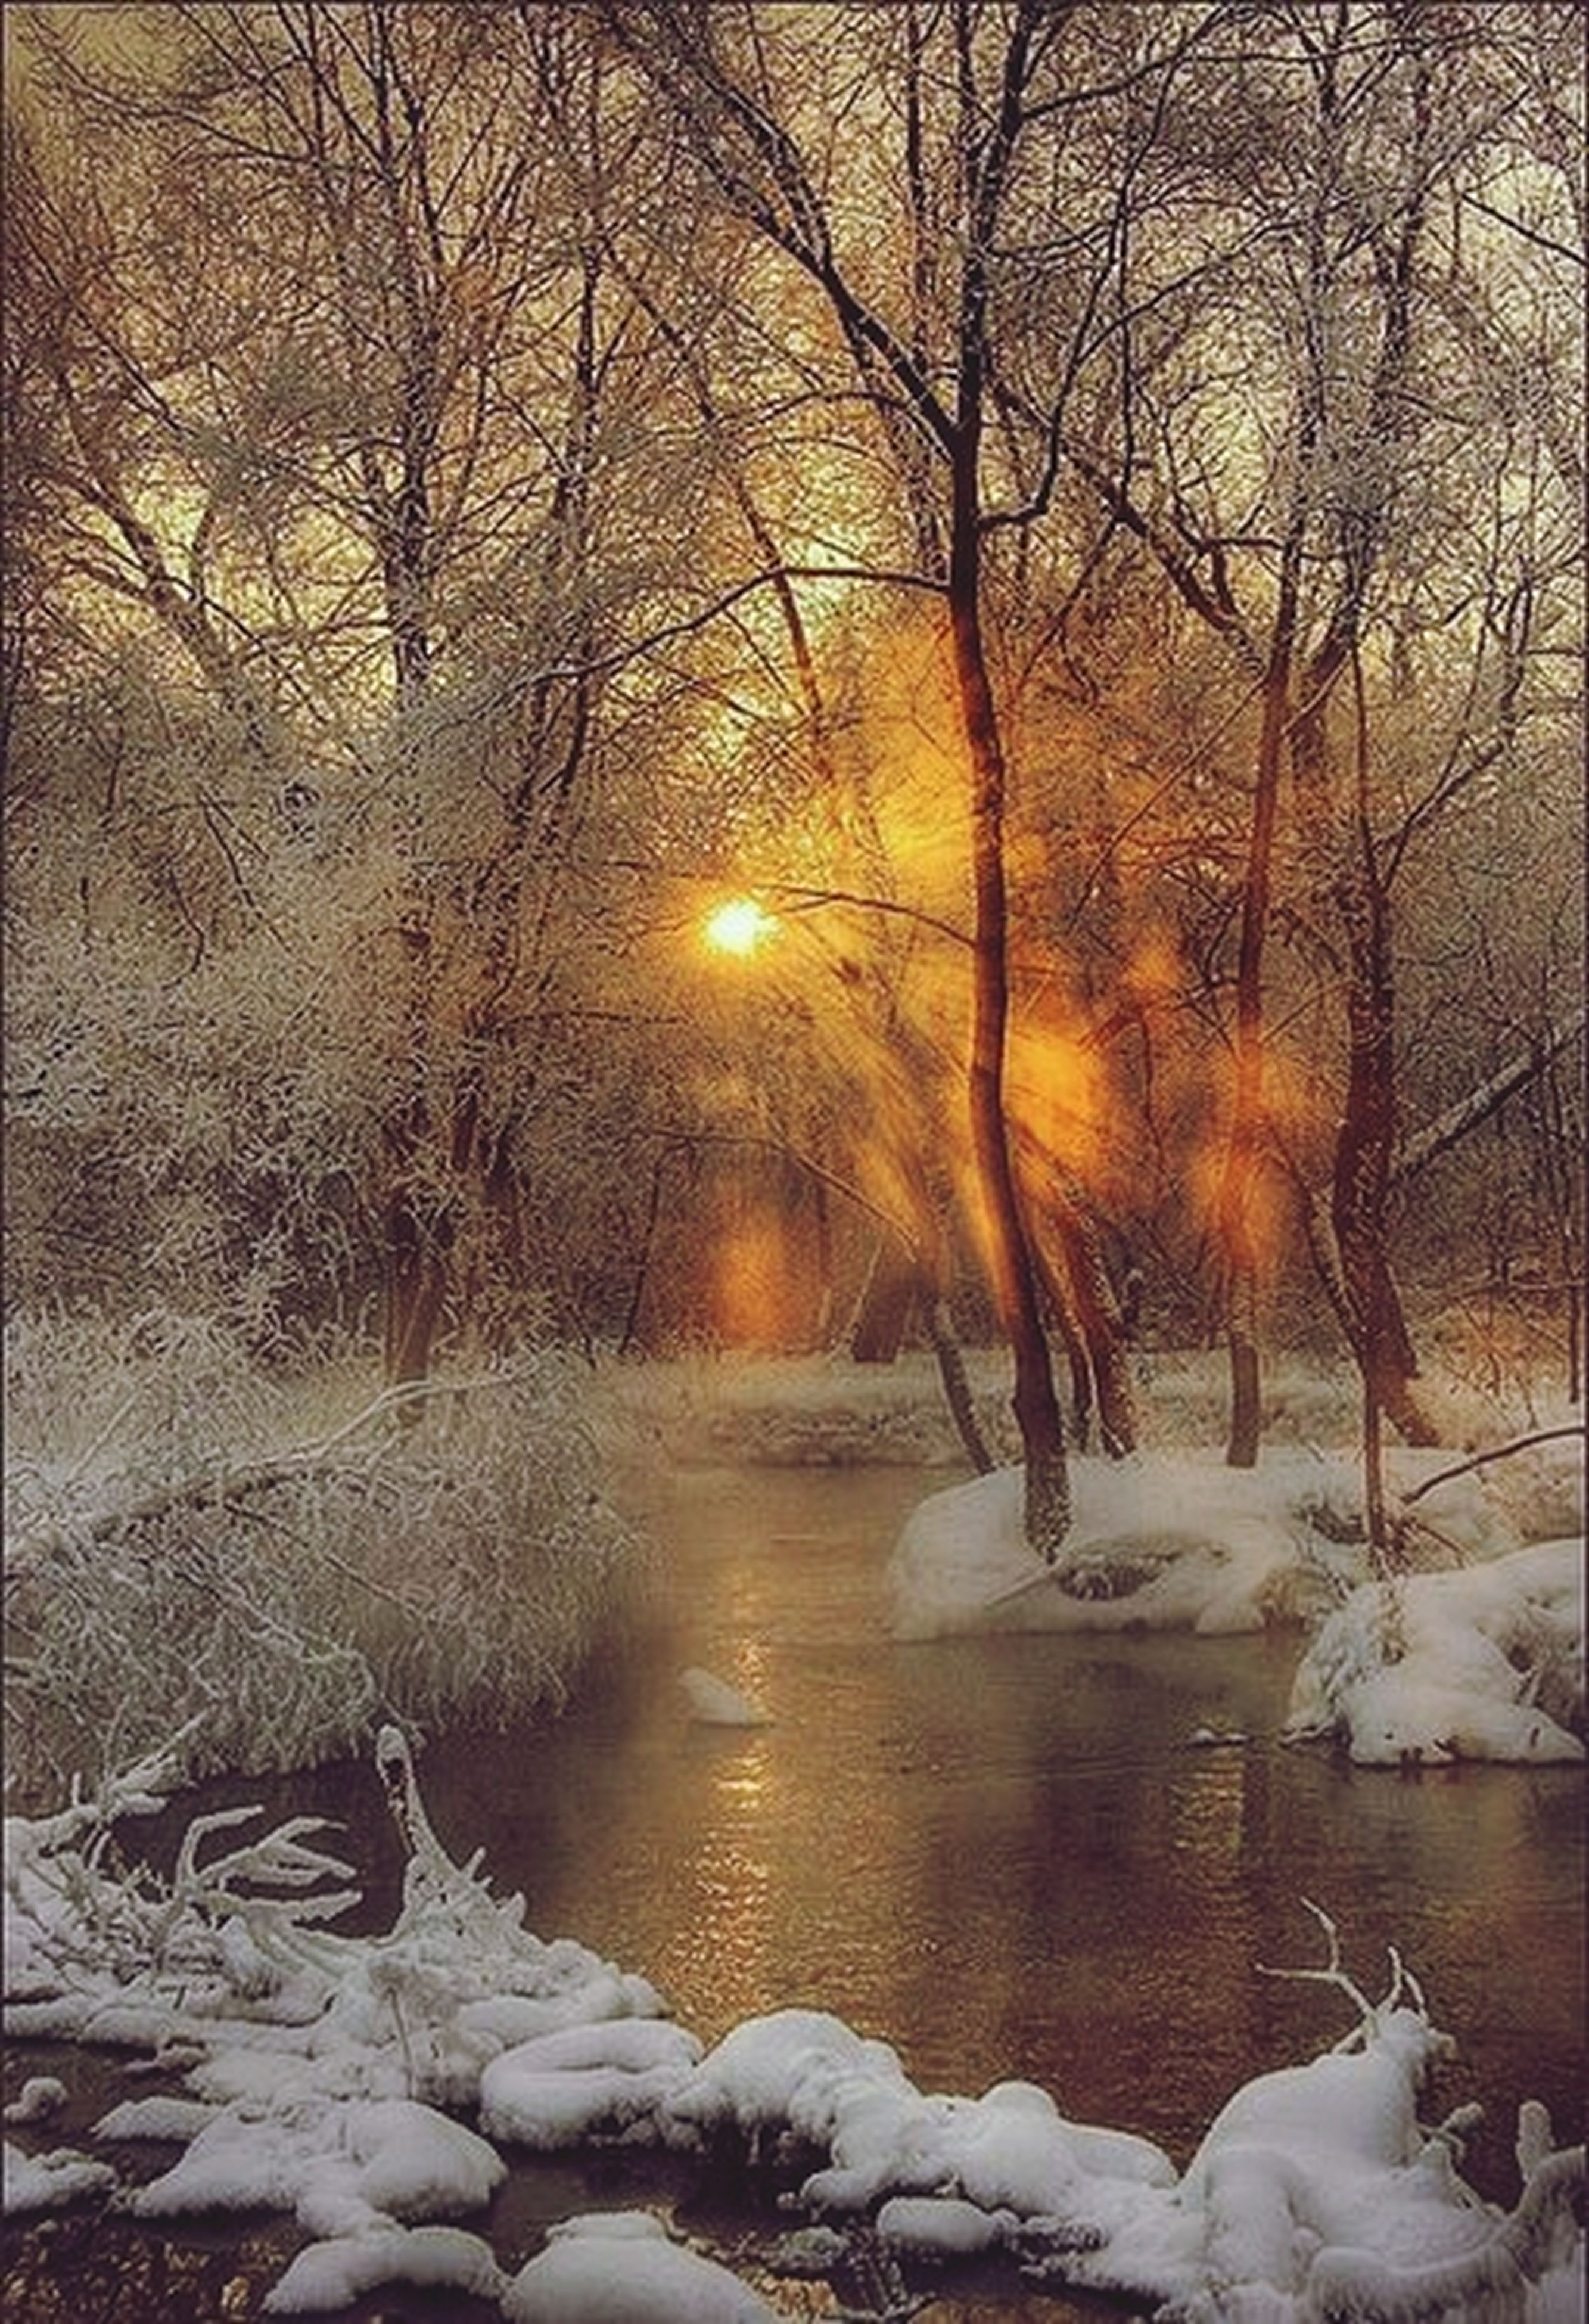 snow, winter, cold temperature, season, bare tree, weather, tree, frozen, sunset, covering, tranquil scene, tranquility, beauty in nature, nature, scenics, sun, branch, landscape, covered, cold